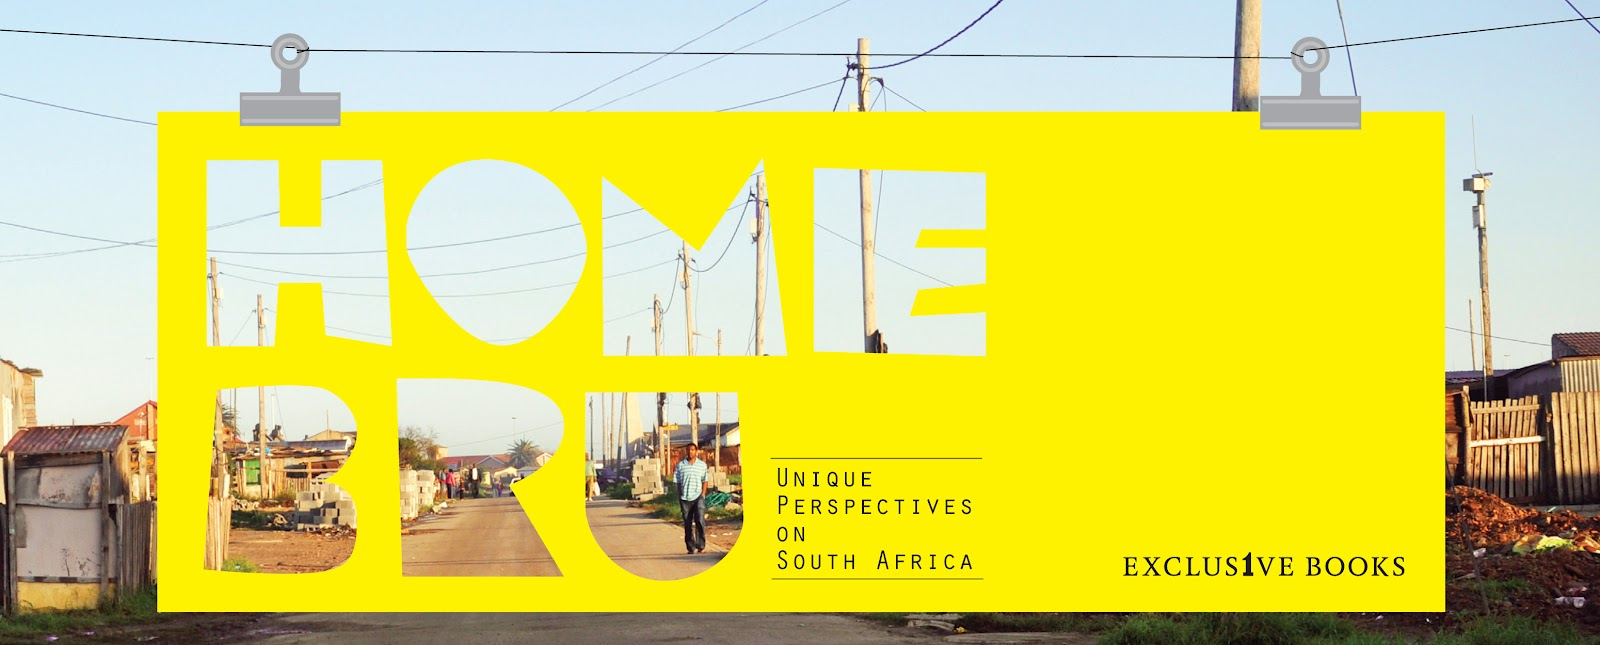 2012 Exclusive Books Homebru List: Unique Perspectives on South Africa